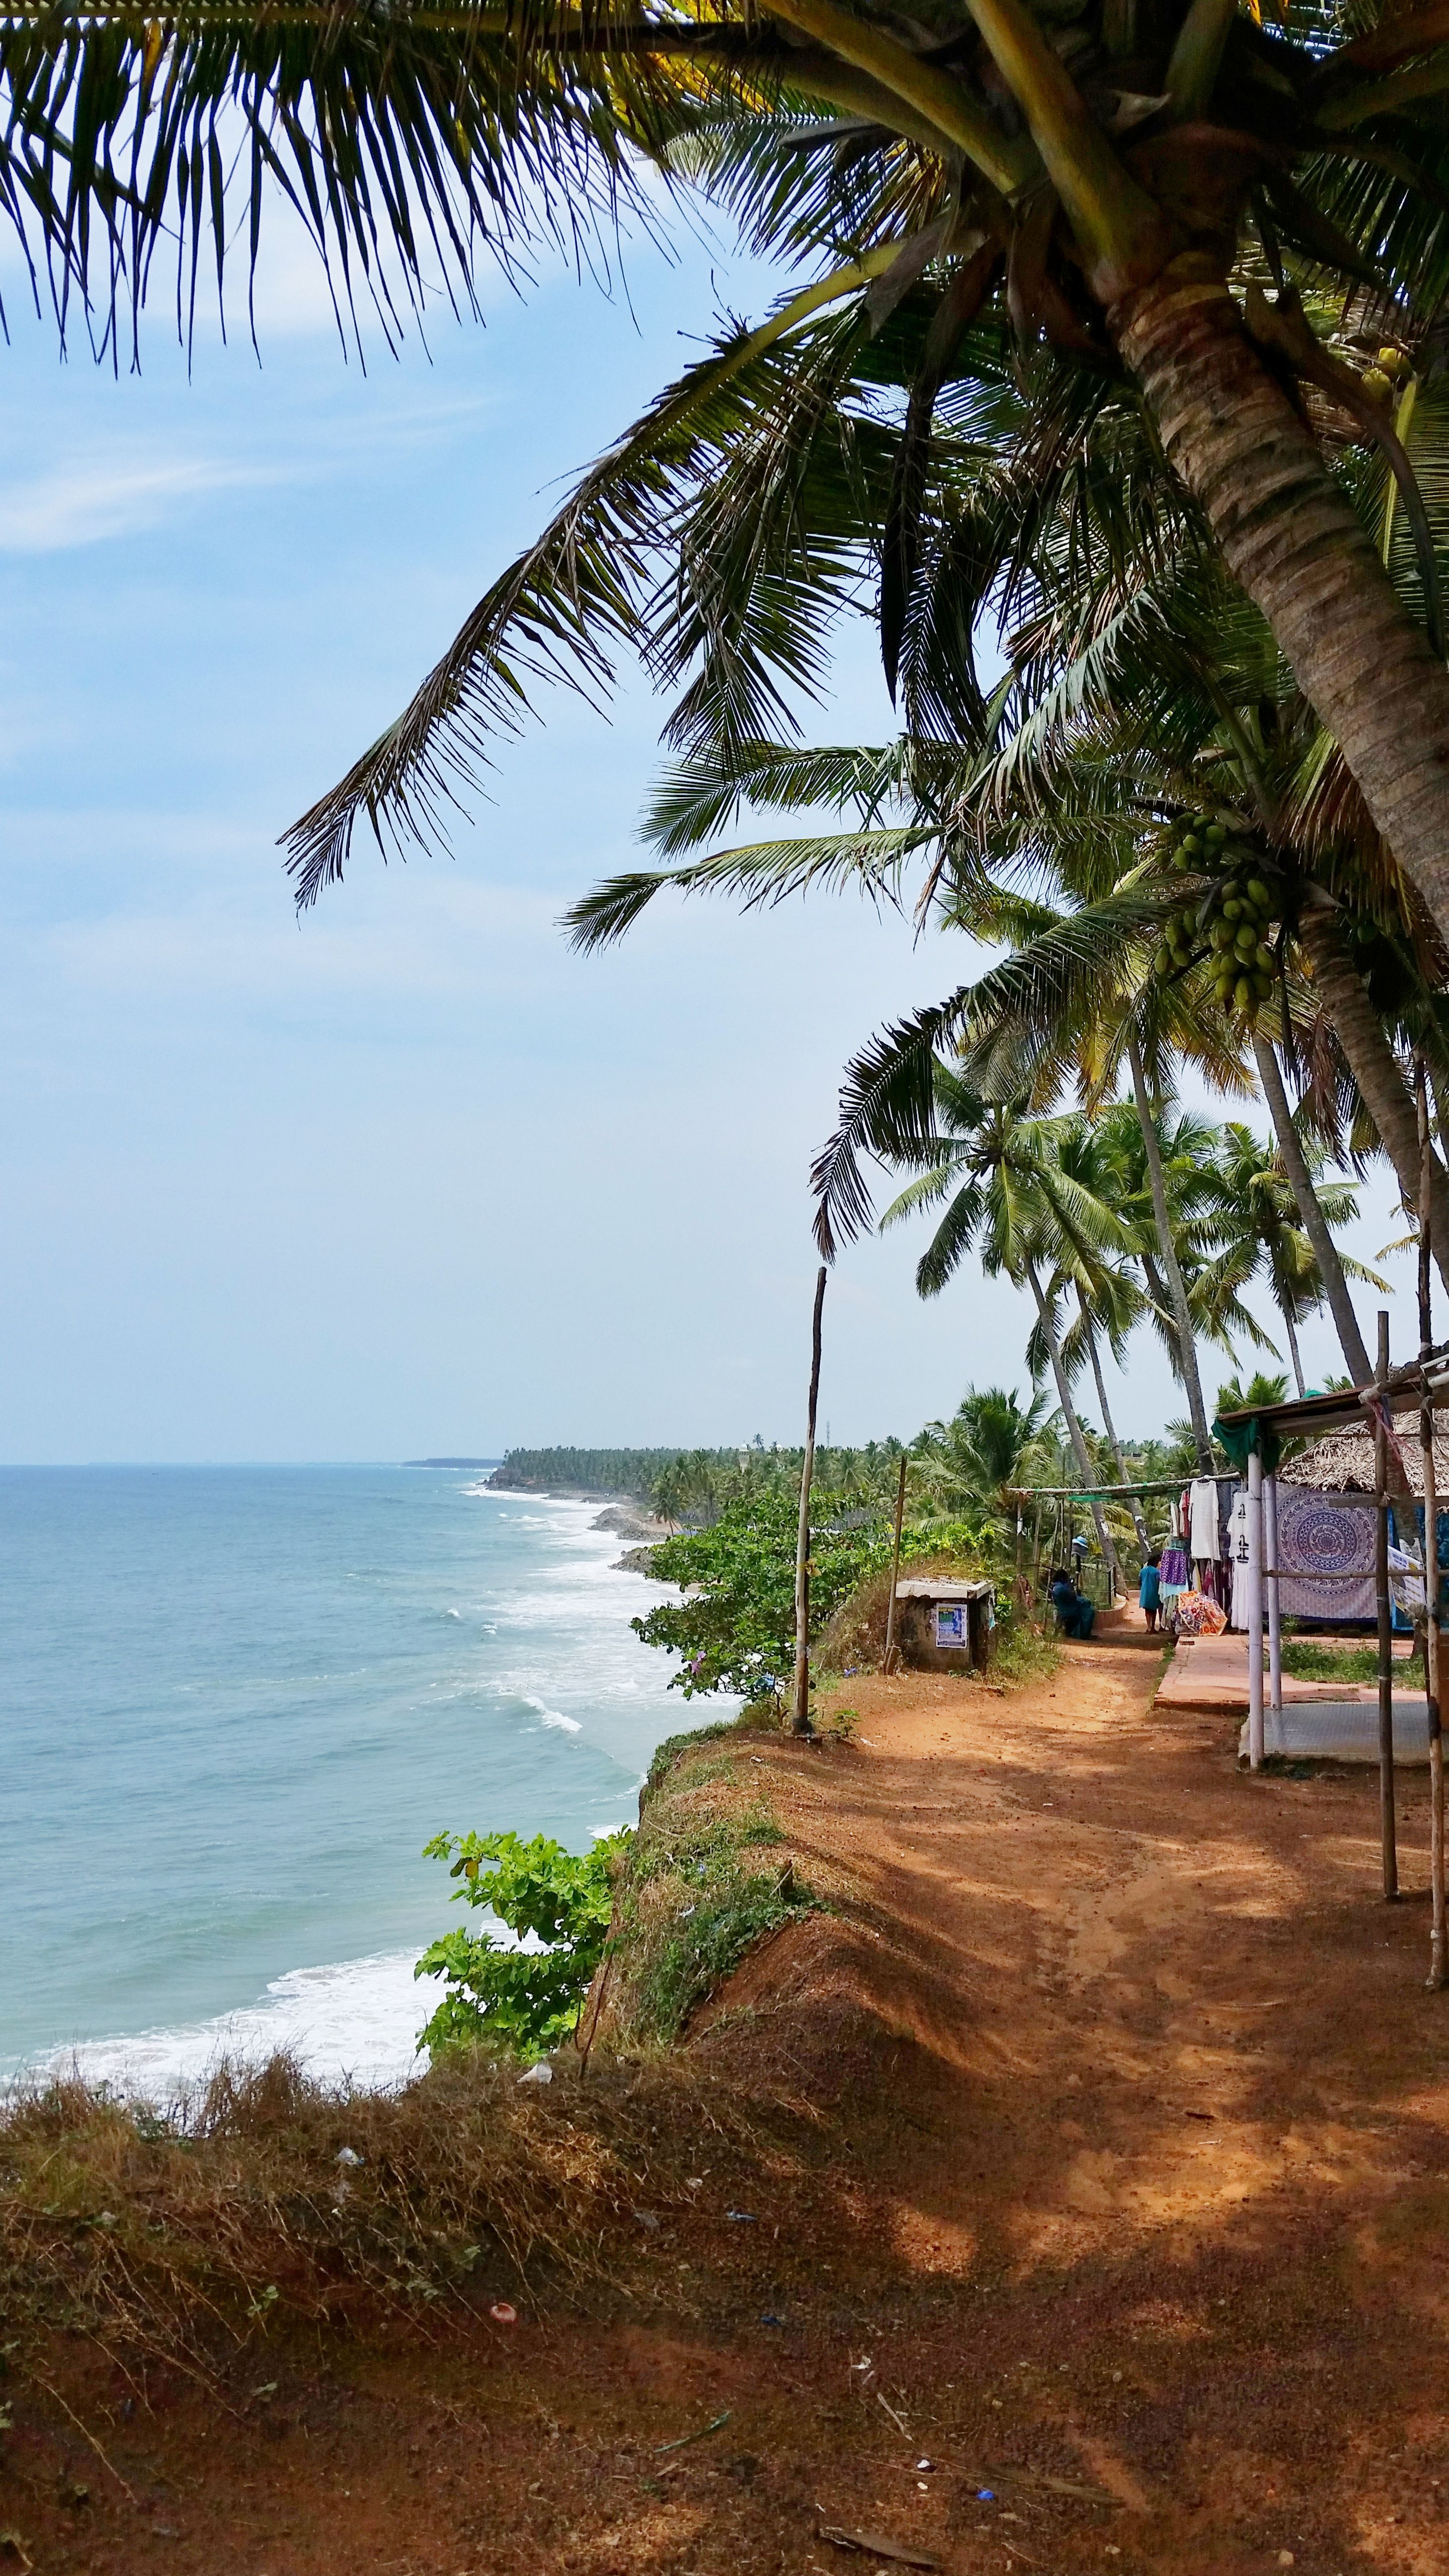 backpacking south asia. india travel tips. beach towns in asia. world bucket list travel destinations and places to visit in asia. kerala india